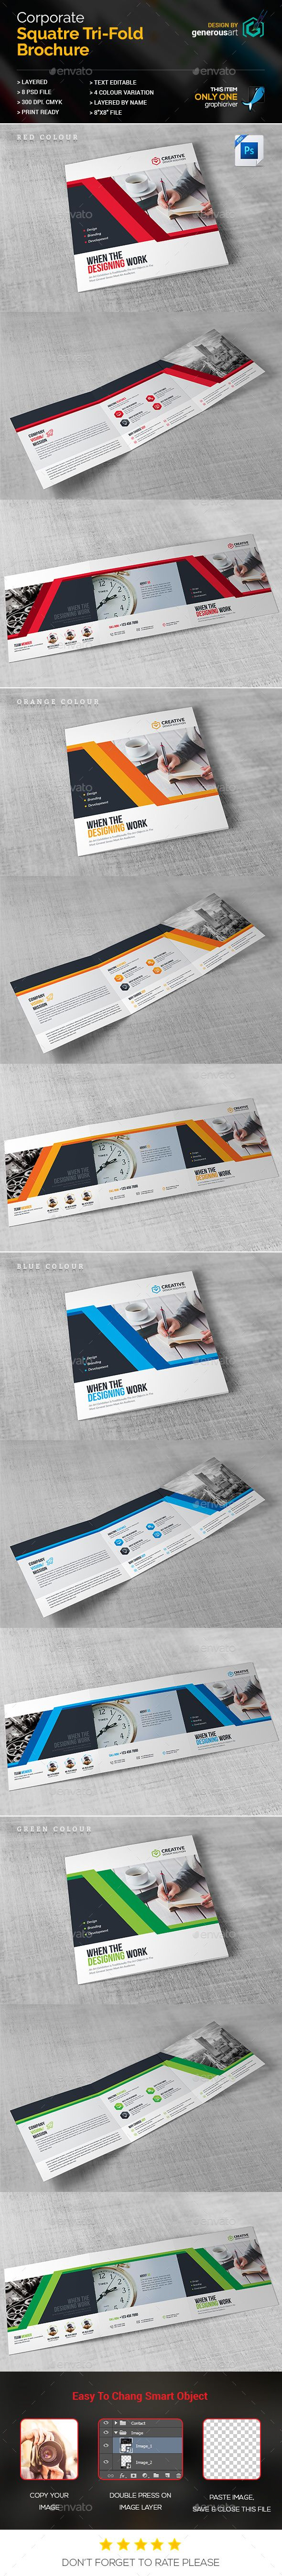 Business Square Tri-Fold Brochure Template PSD. Download here: http://graphicriver.net/item/business-square-trifold/16776064?ref=ksioks